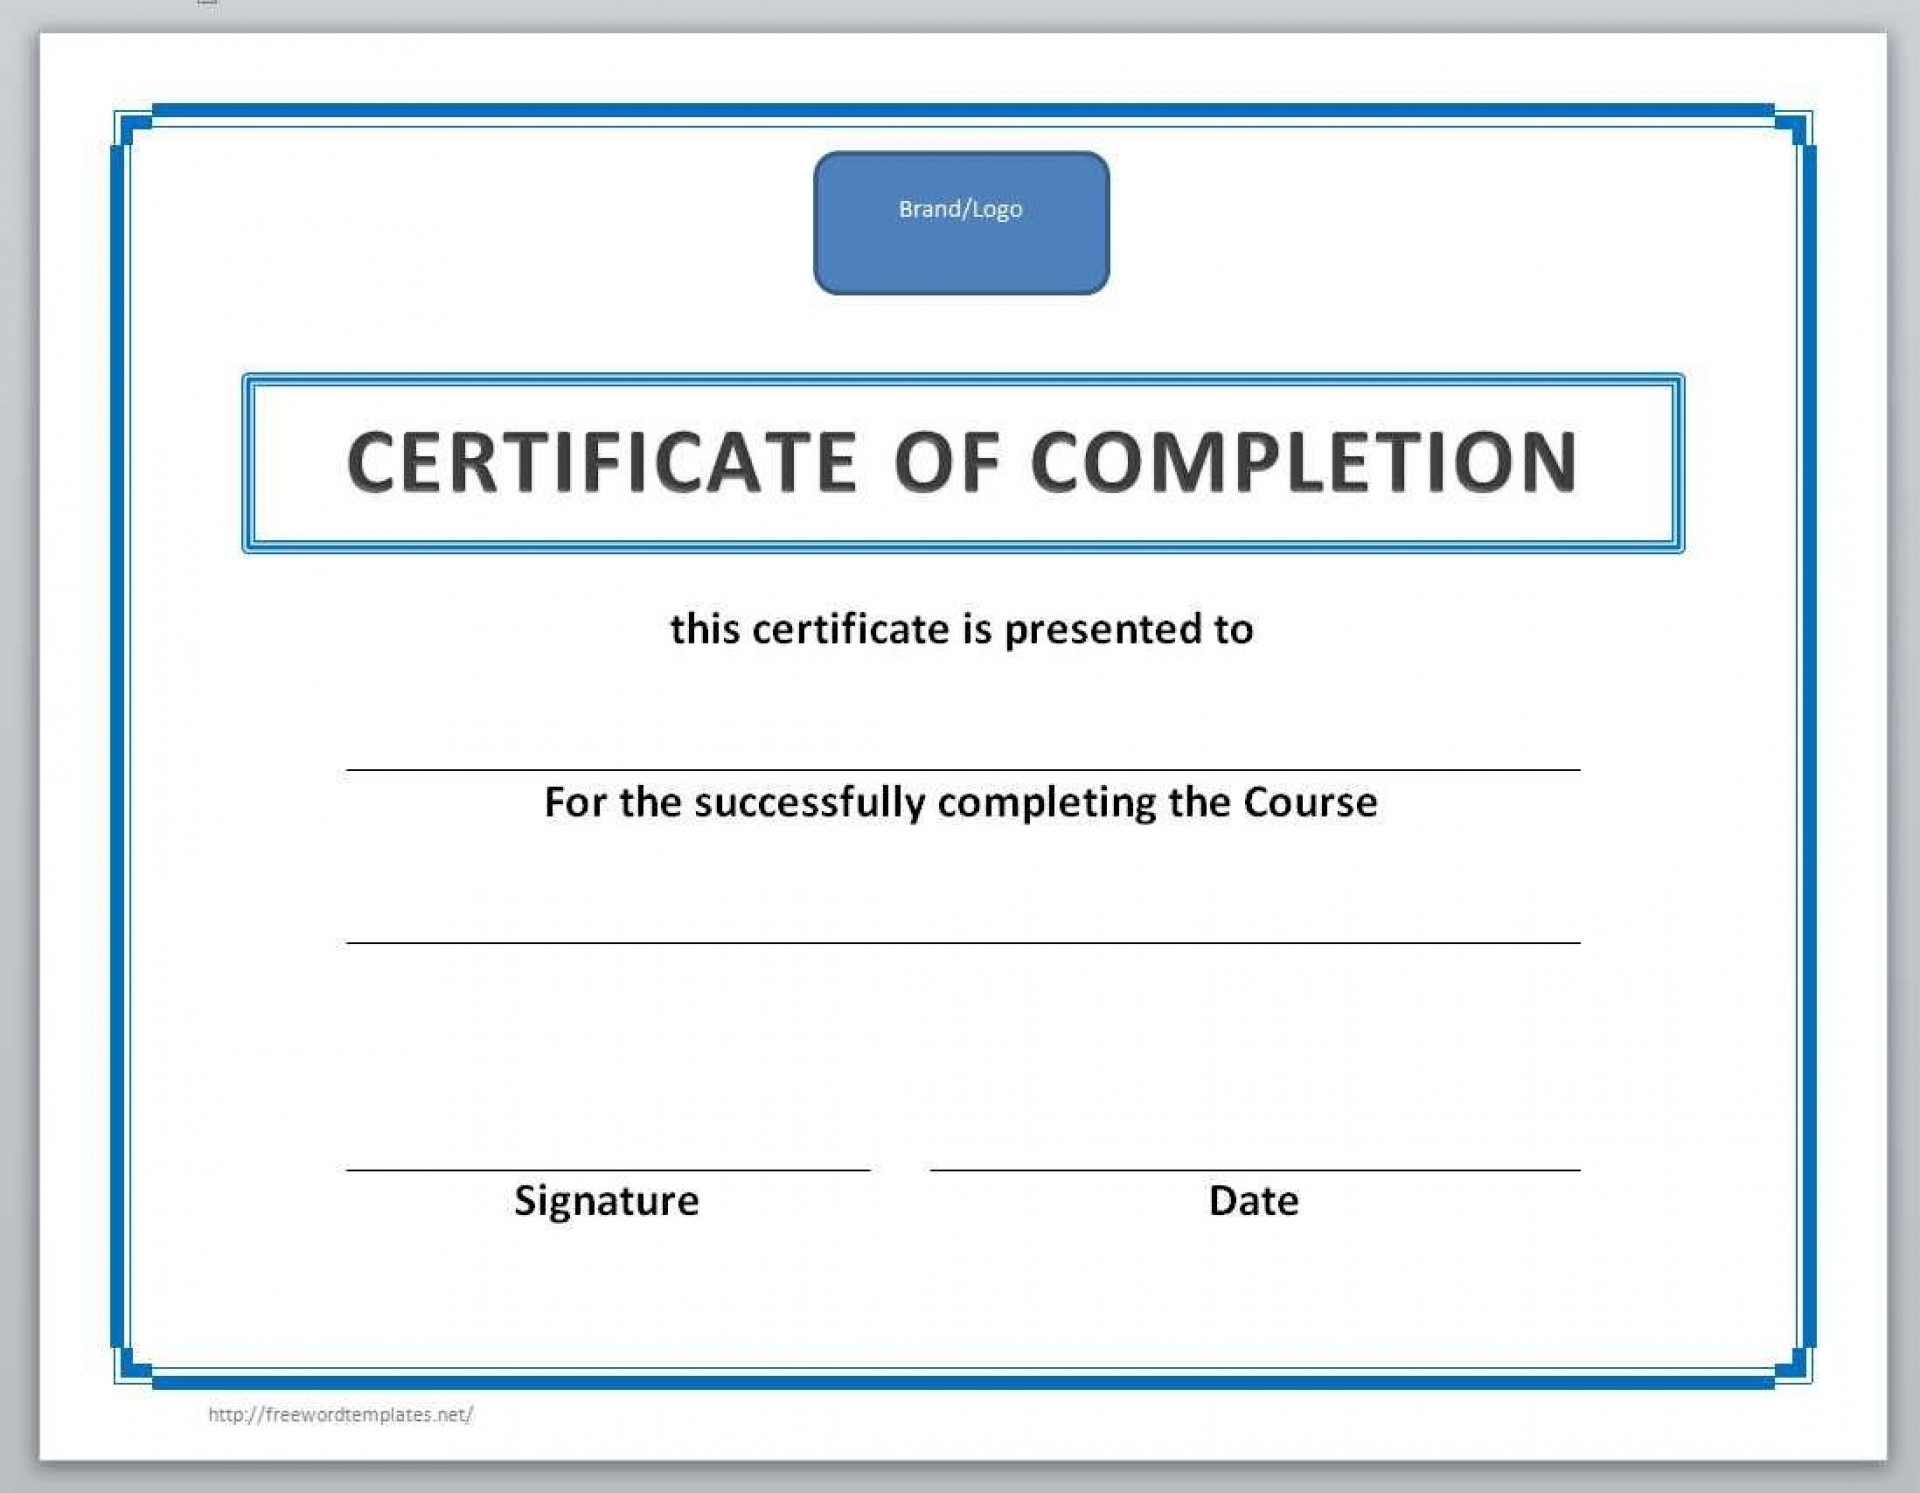 004 Unusual Free Certificate Template Microsoft Word Sample  Of Authenticity Art Puppy Birth Marriage1920